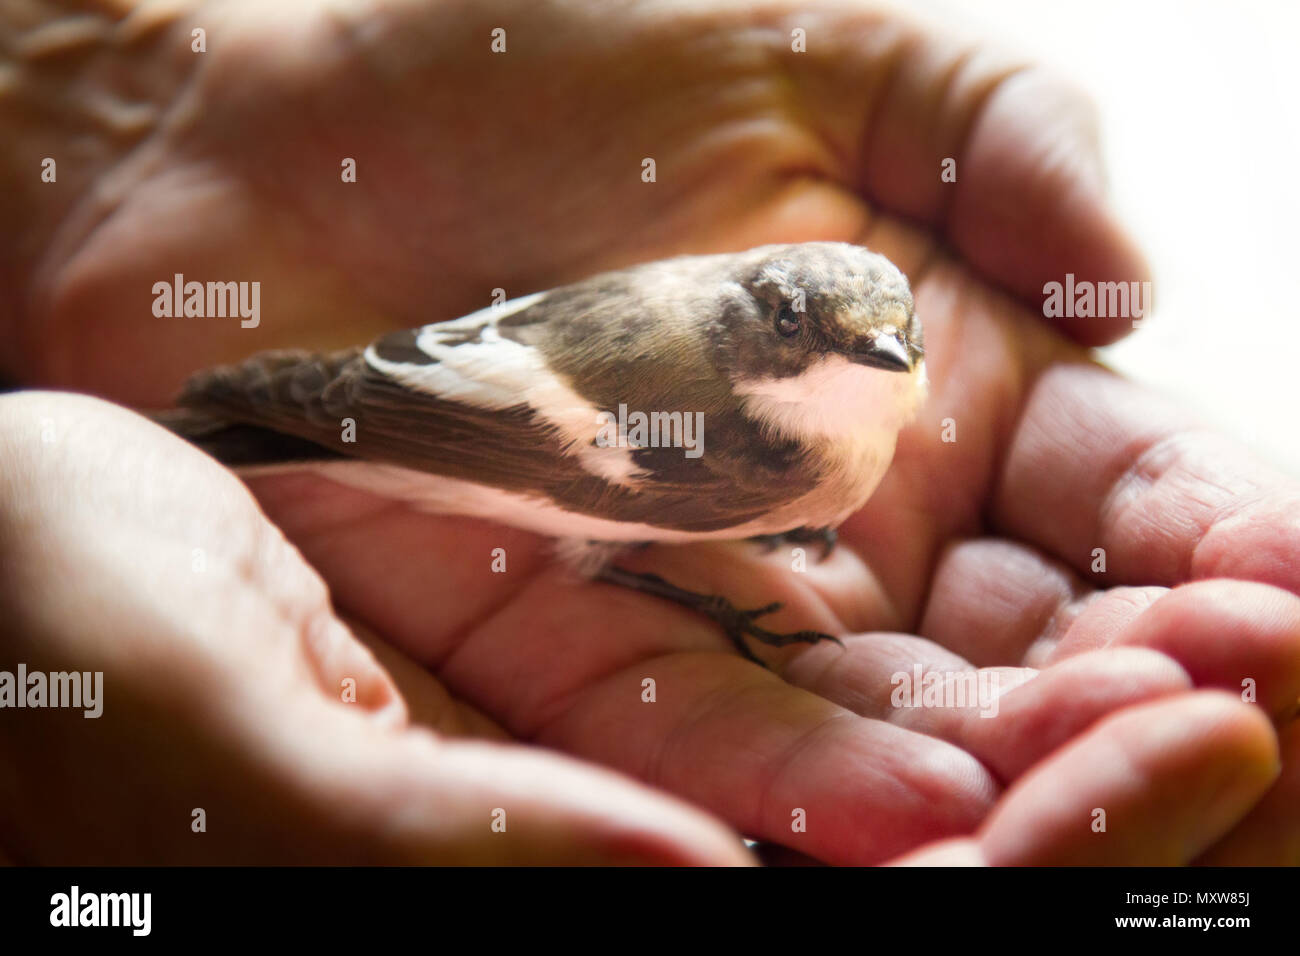 Trusting Bird On Palm Of Person Symbol Of Unity Of Man And Nature